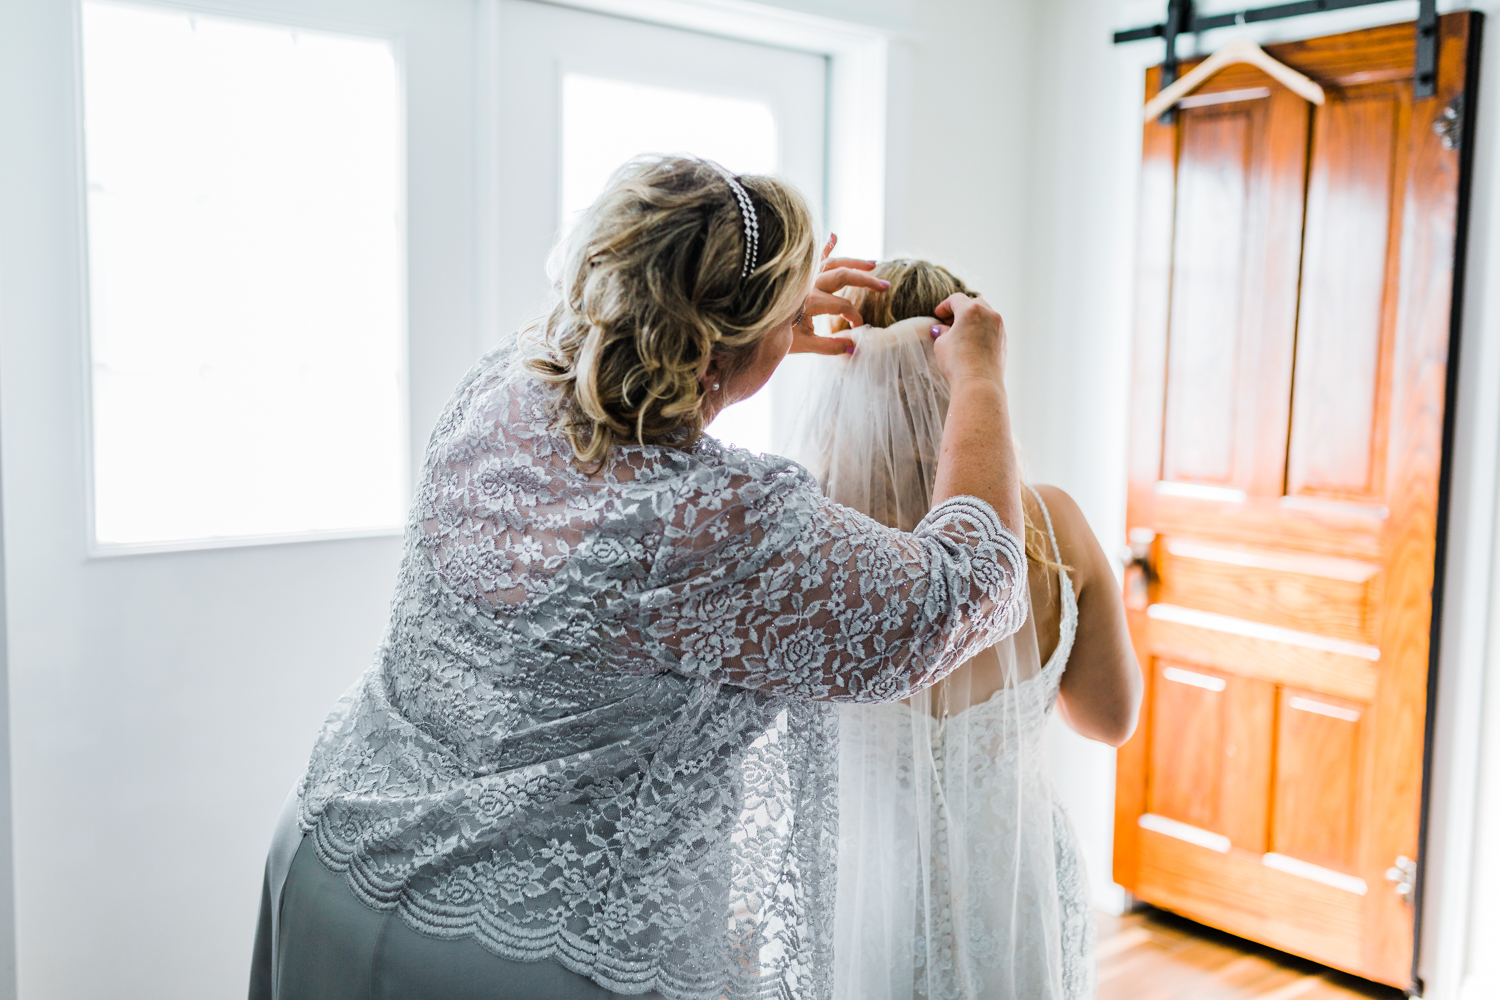 Bride's Mom putting on her veil - 5 star wedding photo and video in Maryland